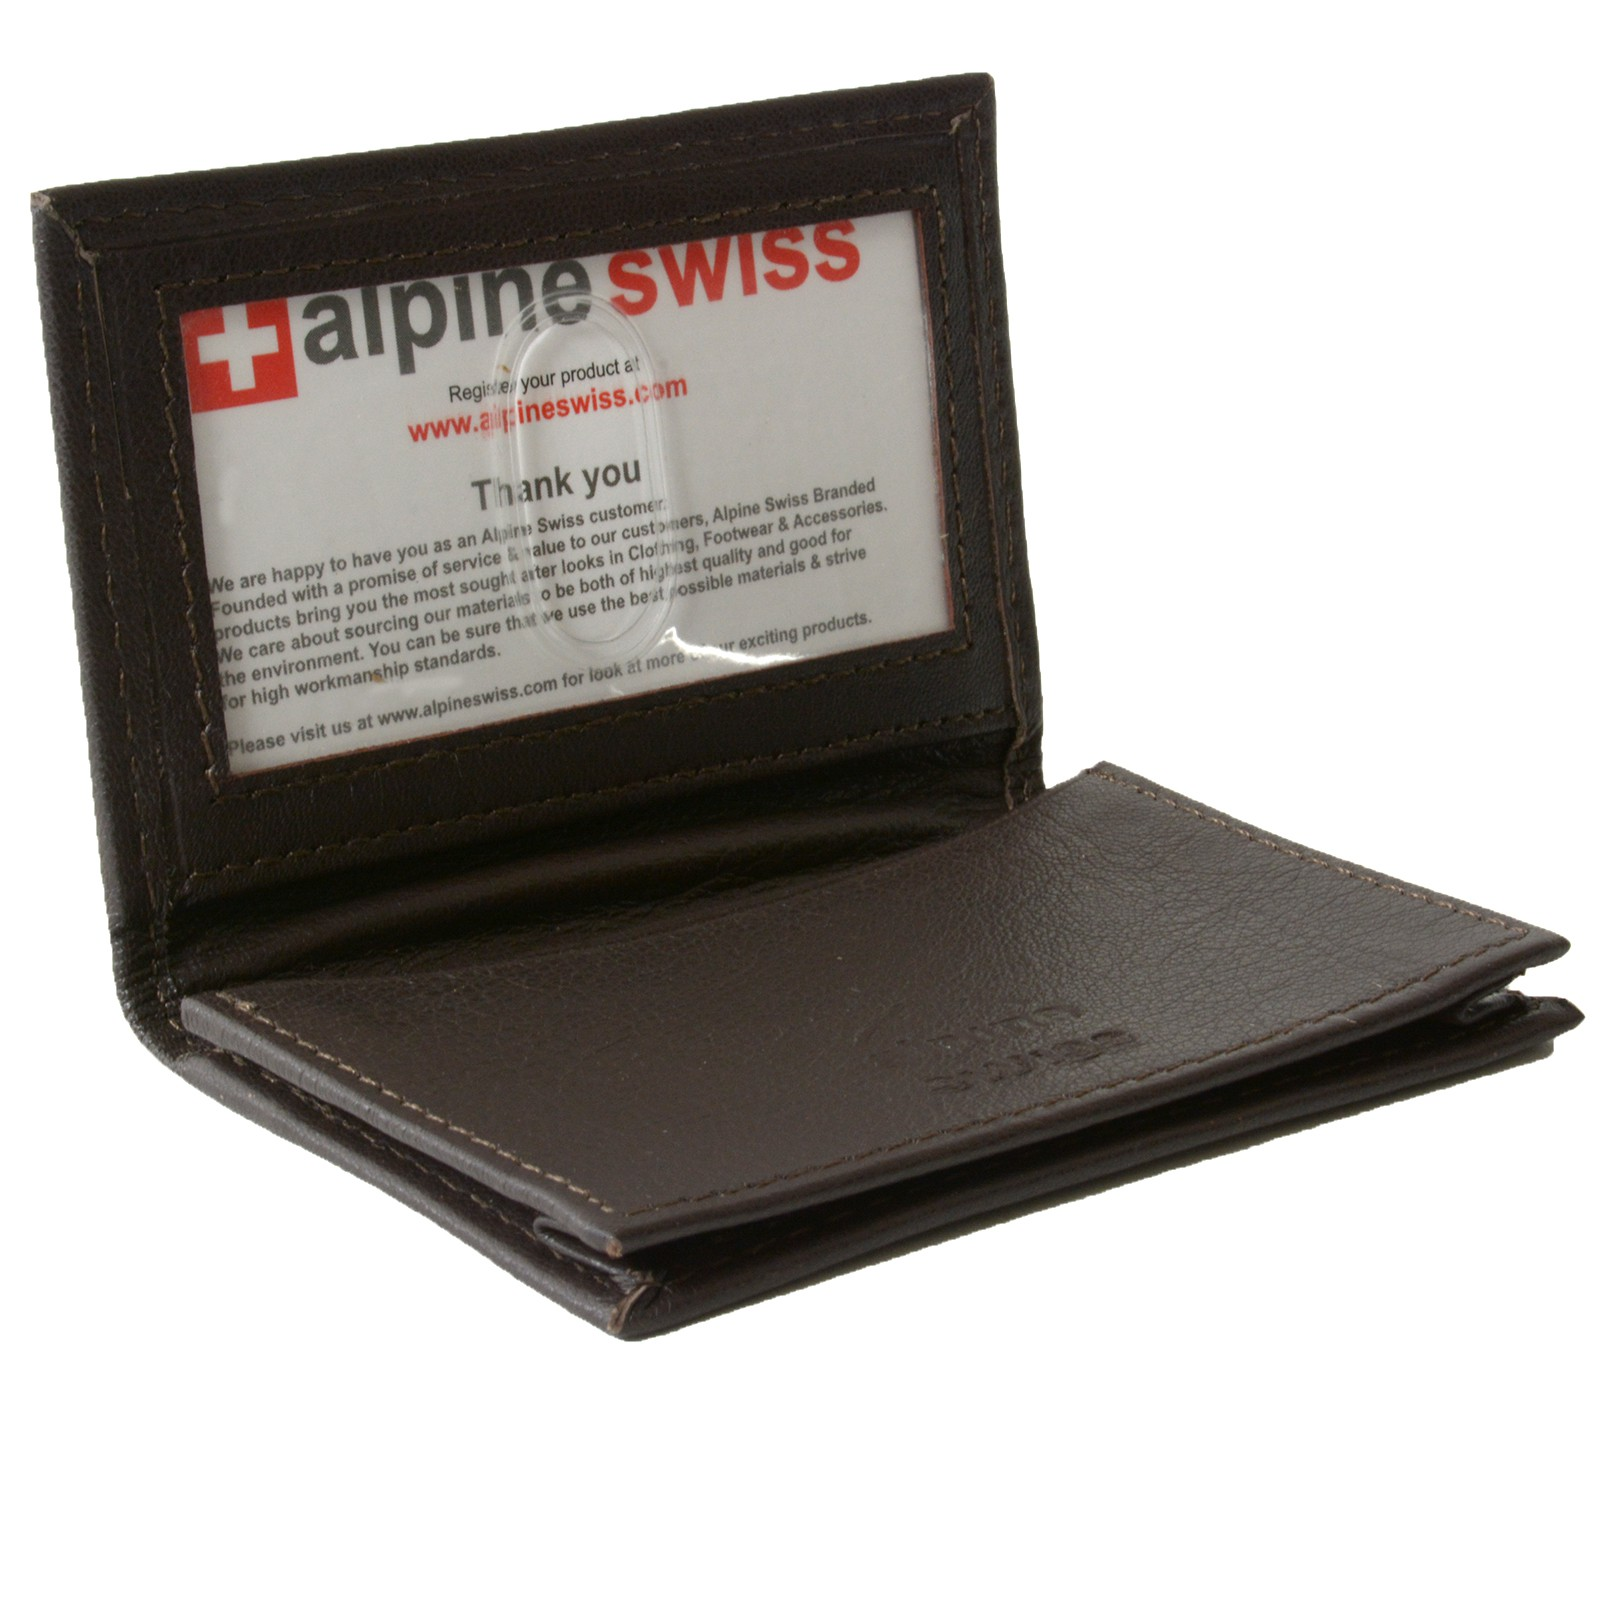 Alpine swiss expandable business card case genuine leather for Leather pocket business card holder